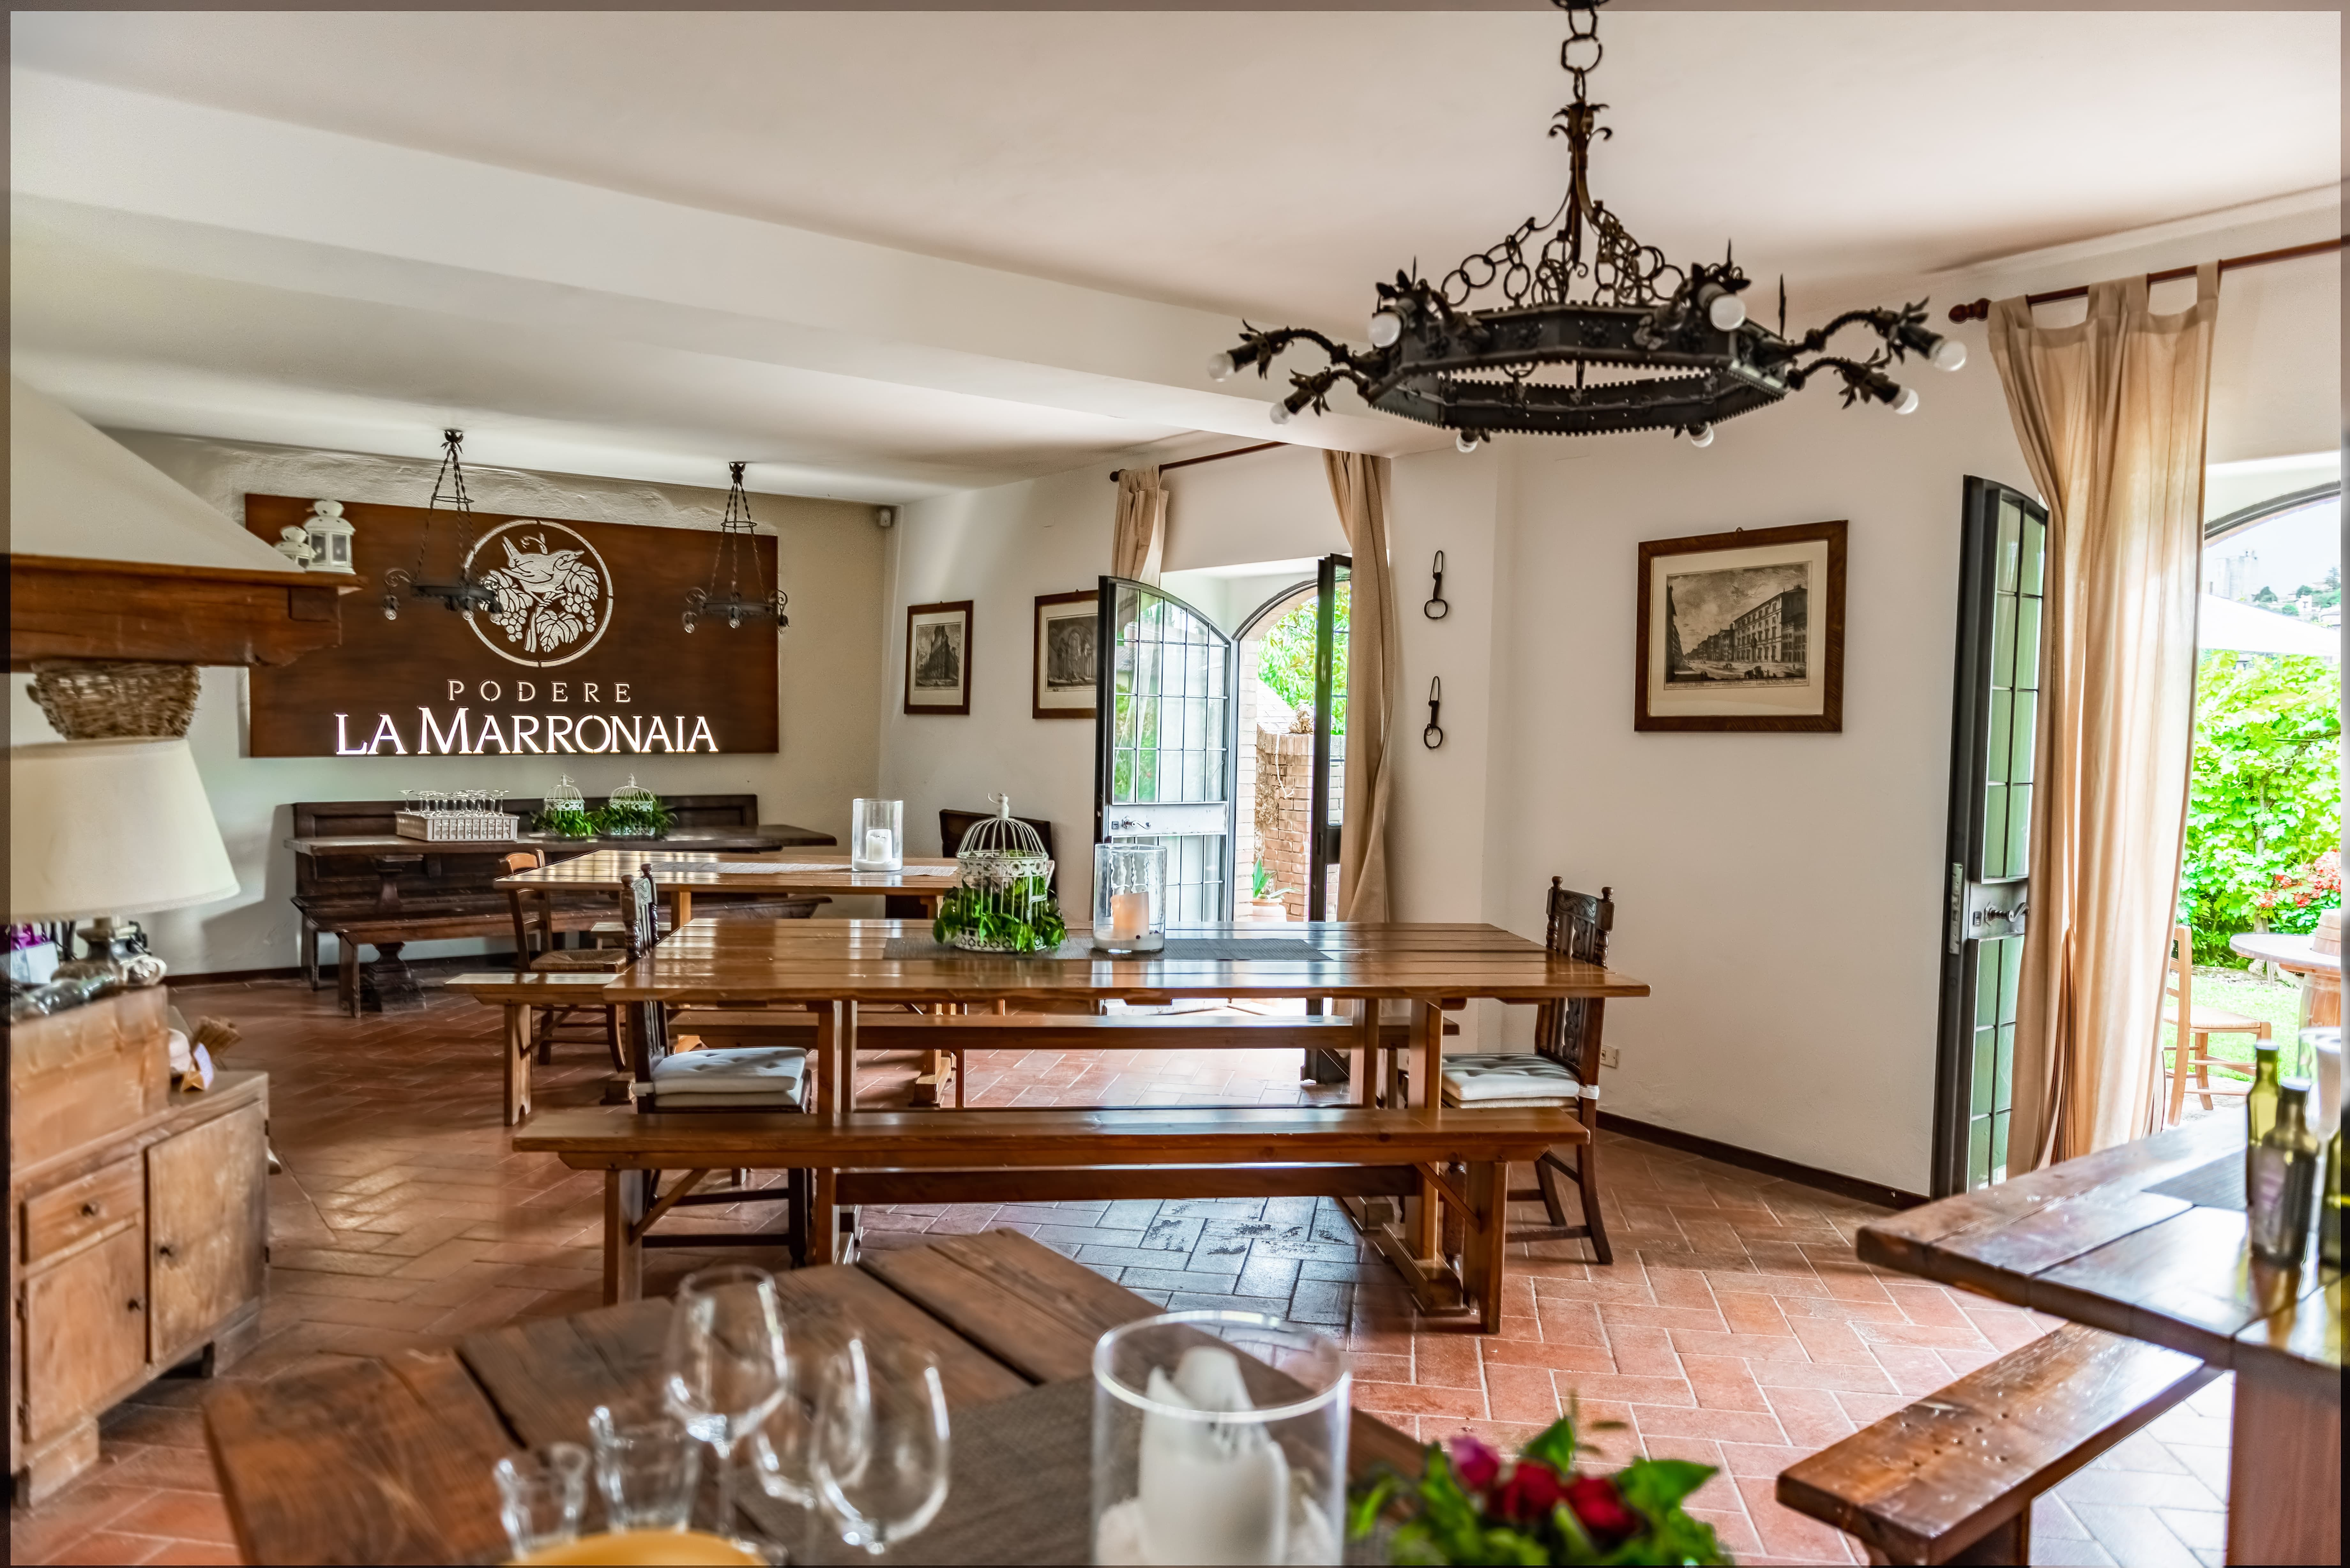 Podere La Marronaia main room, attention to details matters. #lovelyplace #sangimignano #tuscany #countrystyle #attentiontodetails #specialmoments #winery #winelovers